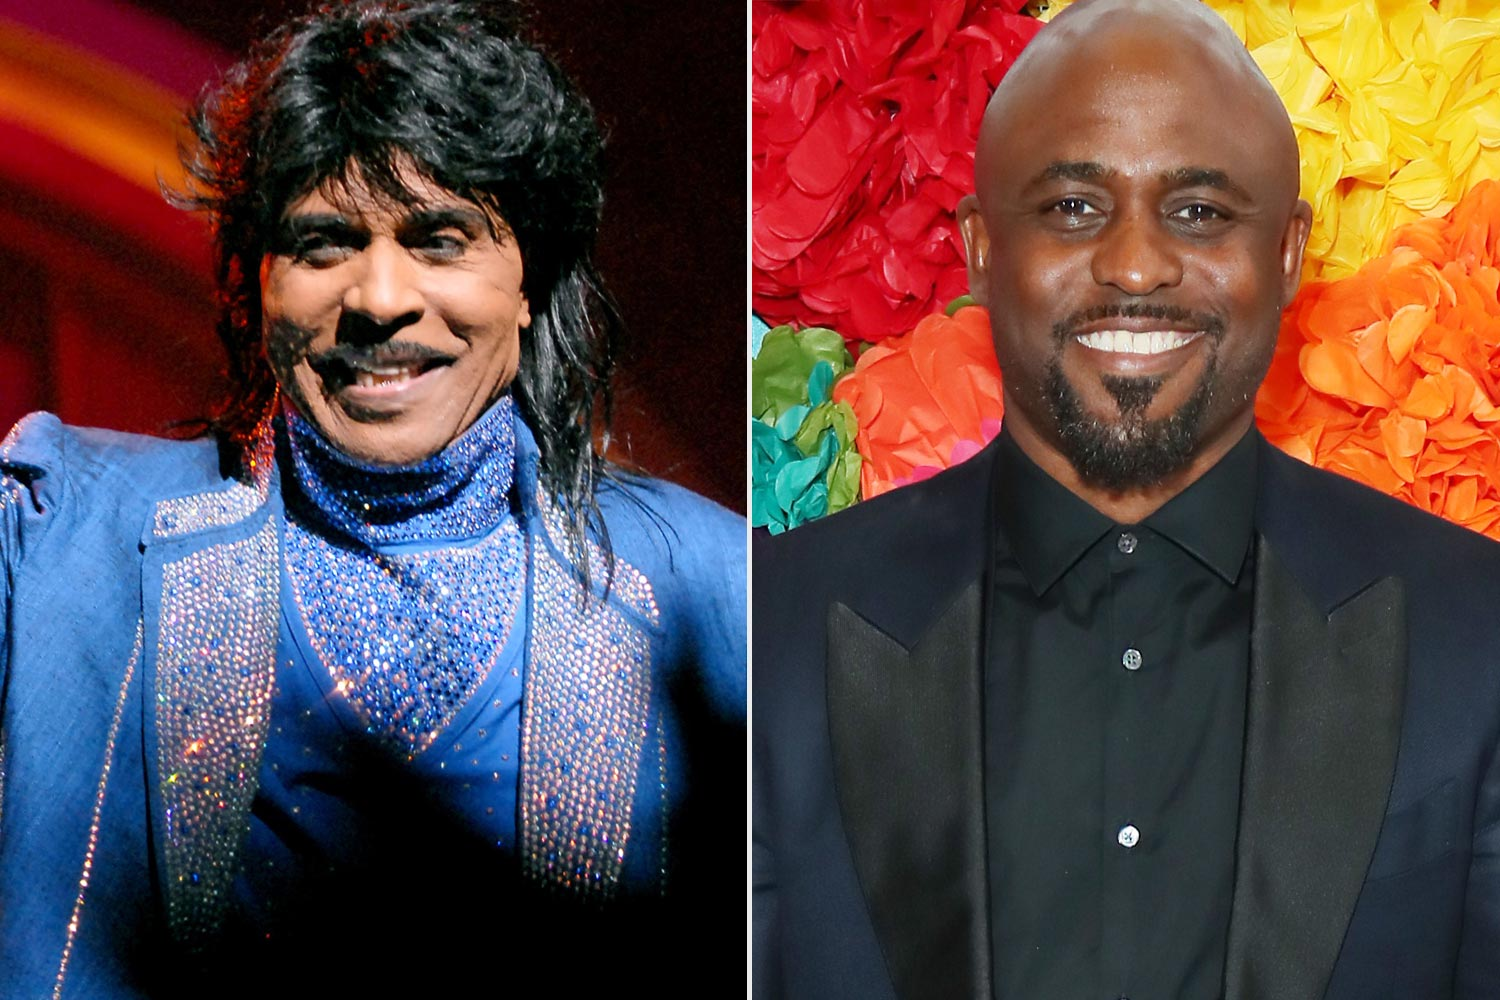 little richard + wayne brady